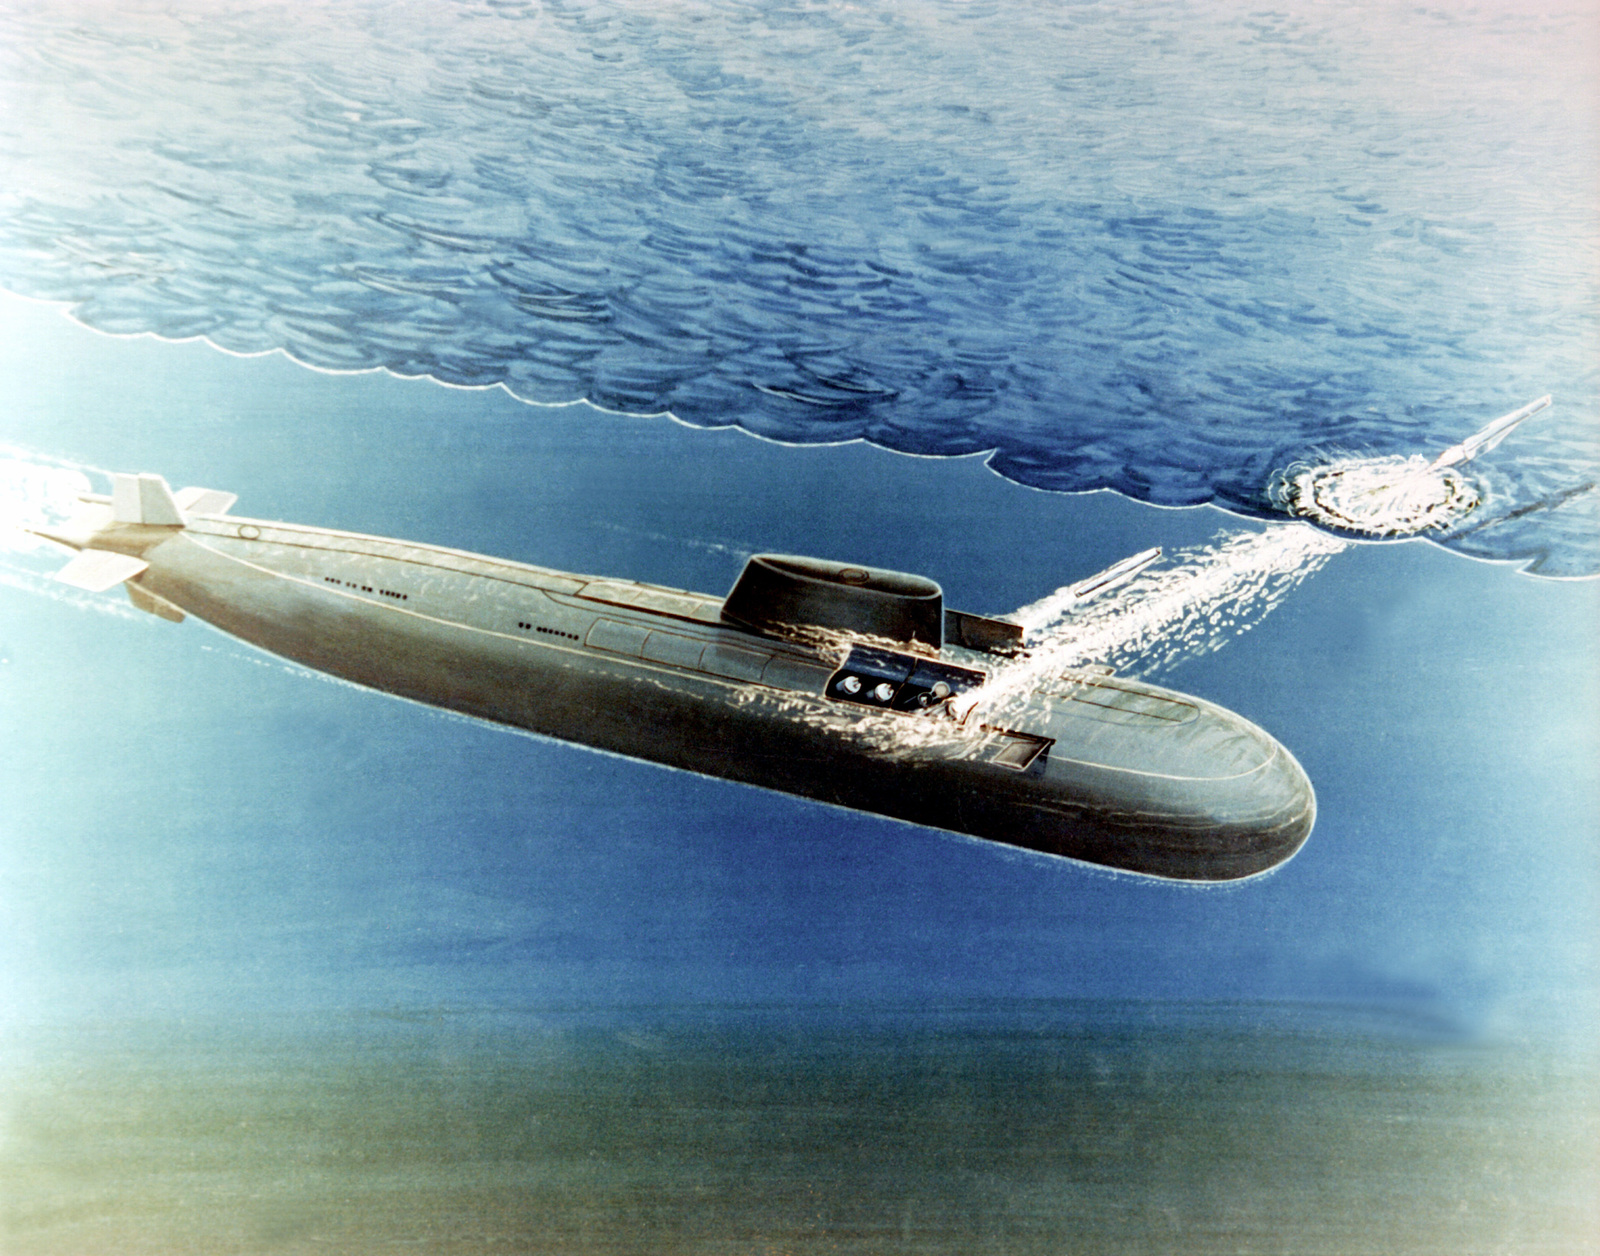 An artist's concept of a Soviet Oscar class cruise missile submarine launching two SS-N-19 cruise missiles while submerged